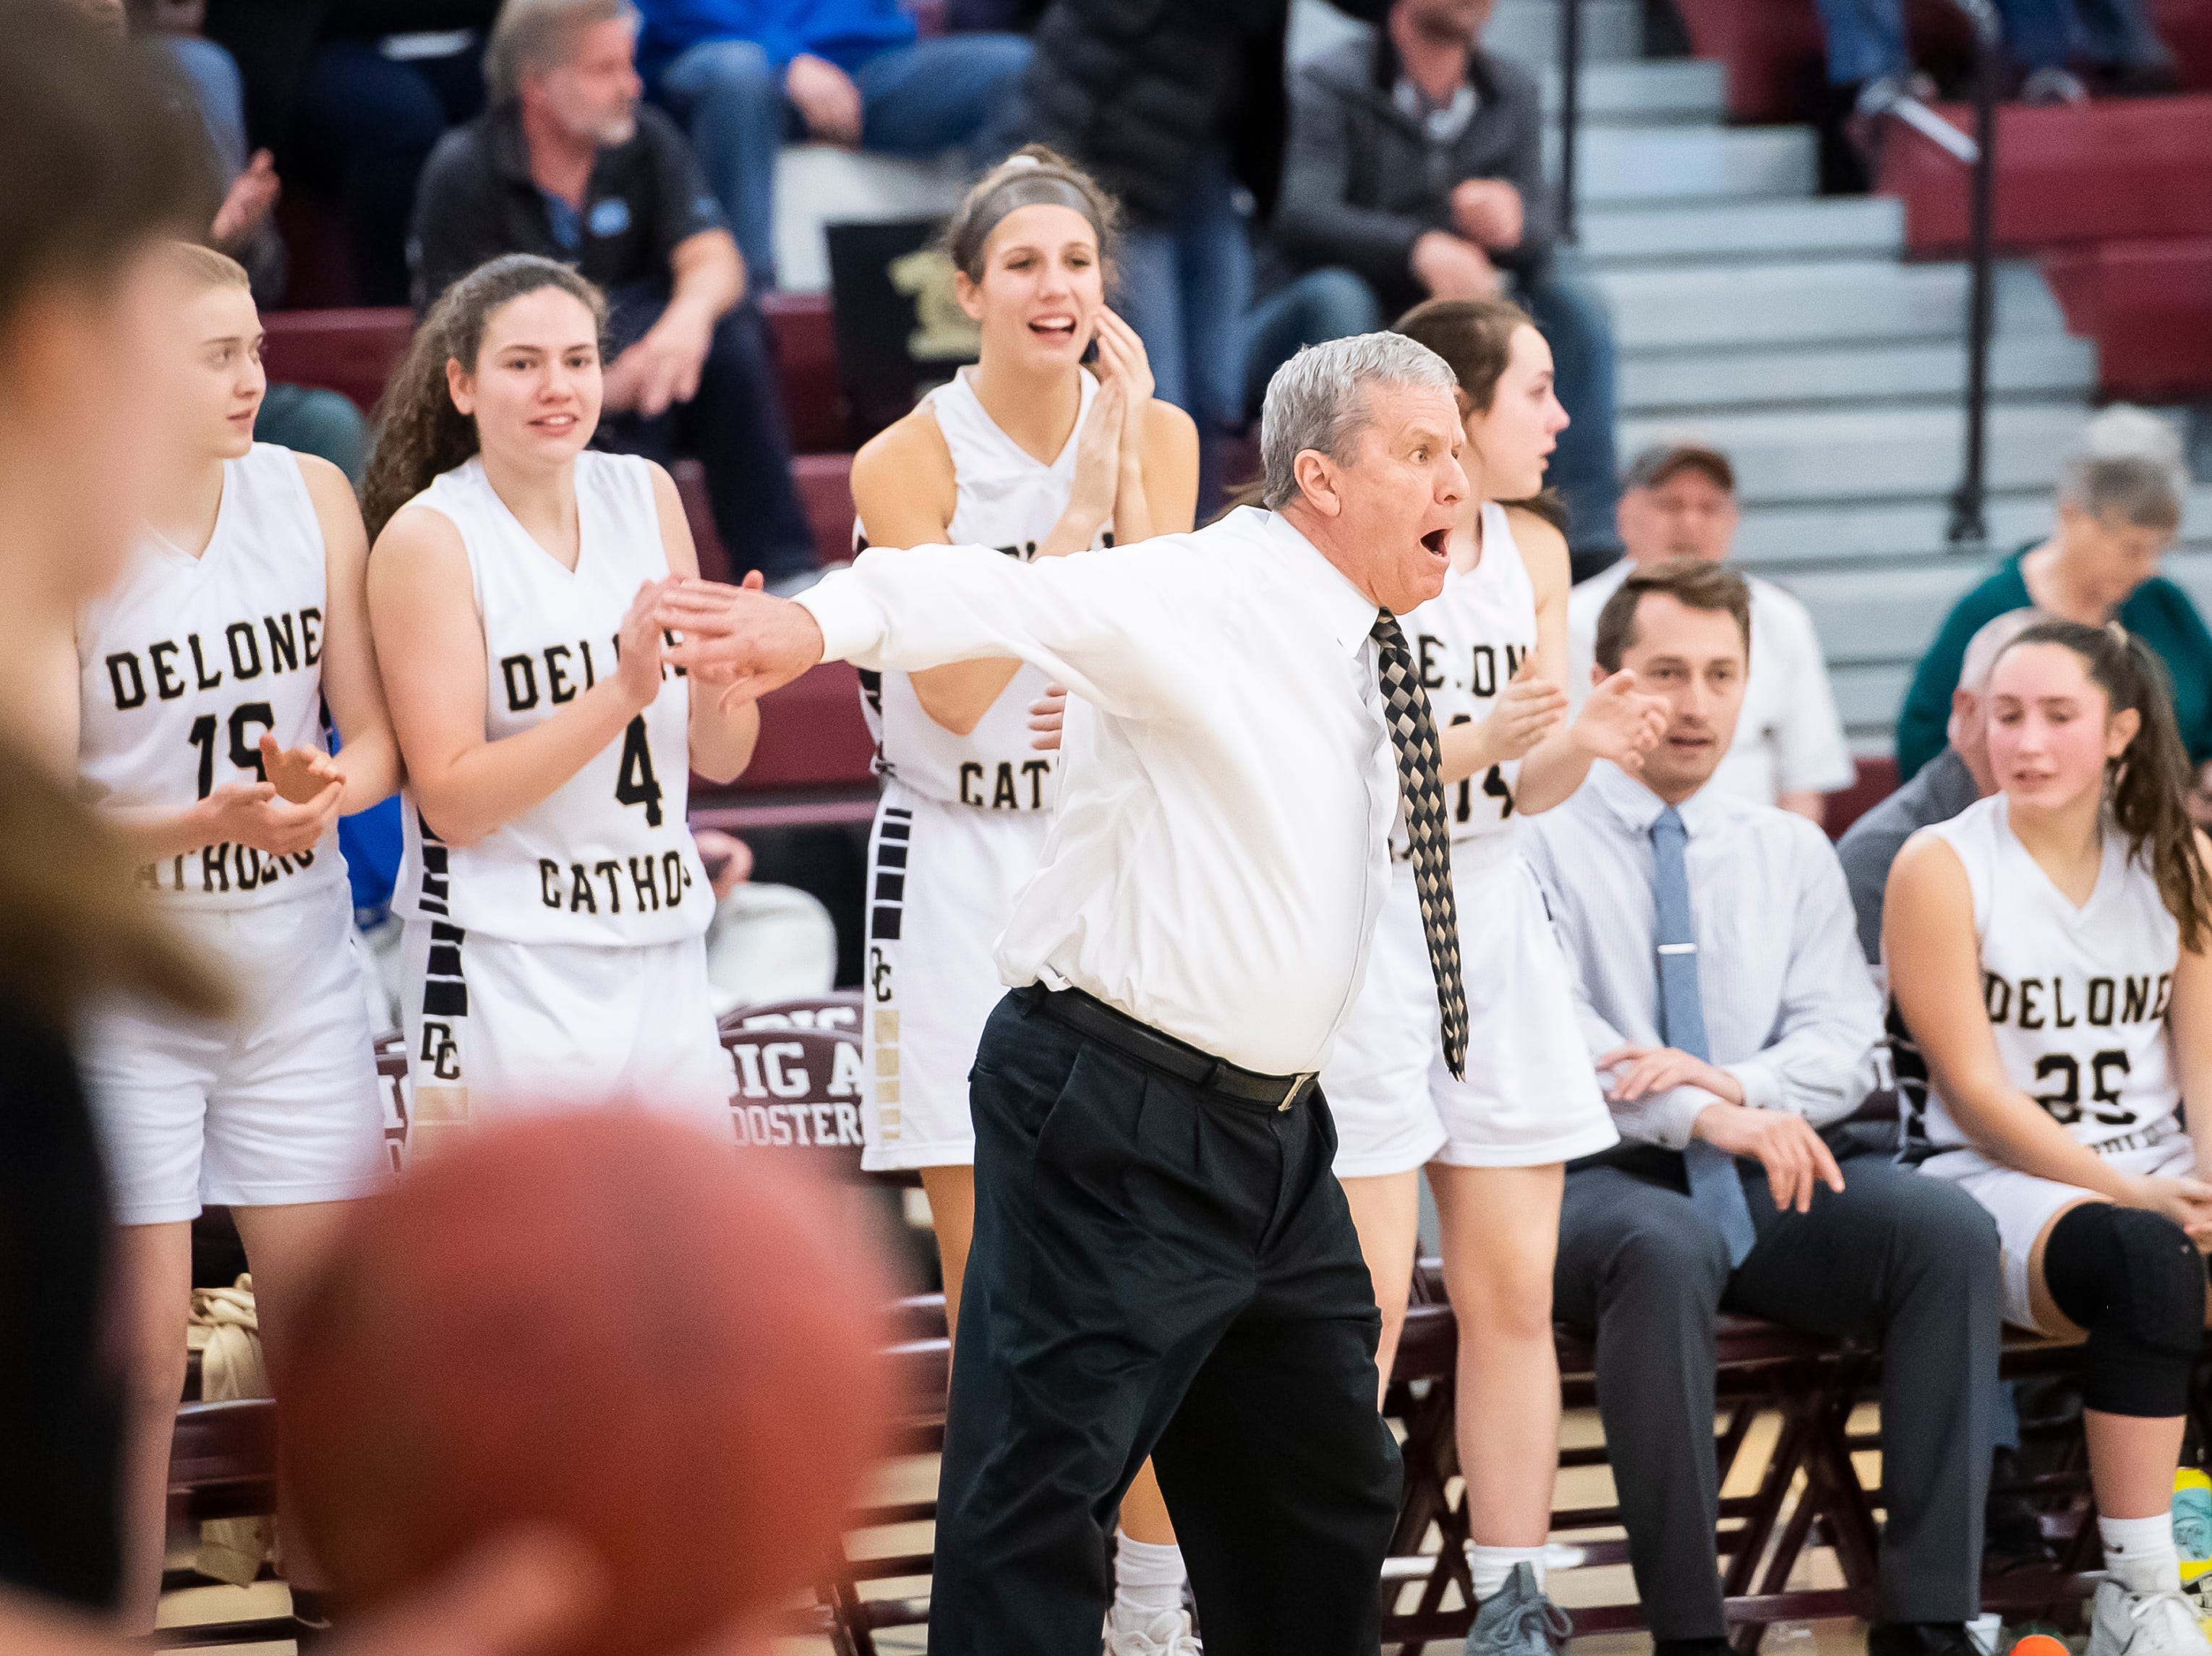 Delone Catholic head coach Gerry Eckenrode motions for his players to get back up to the ball after scoring against Neshannock during a PIAA 3A quarterfinal in Altoona, Pa., on Friday, March 15, 2019. The Squirettes won 50-41.